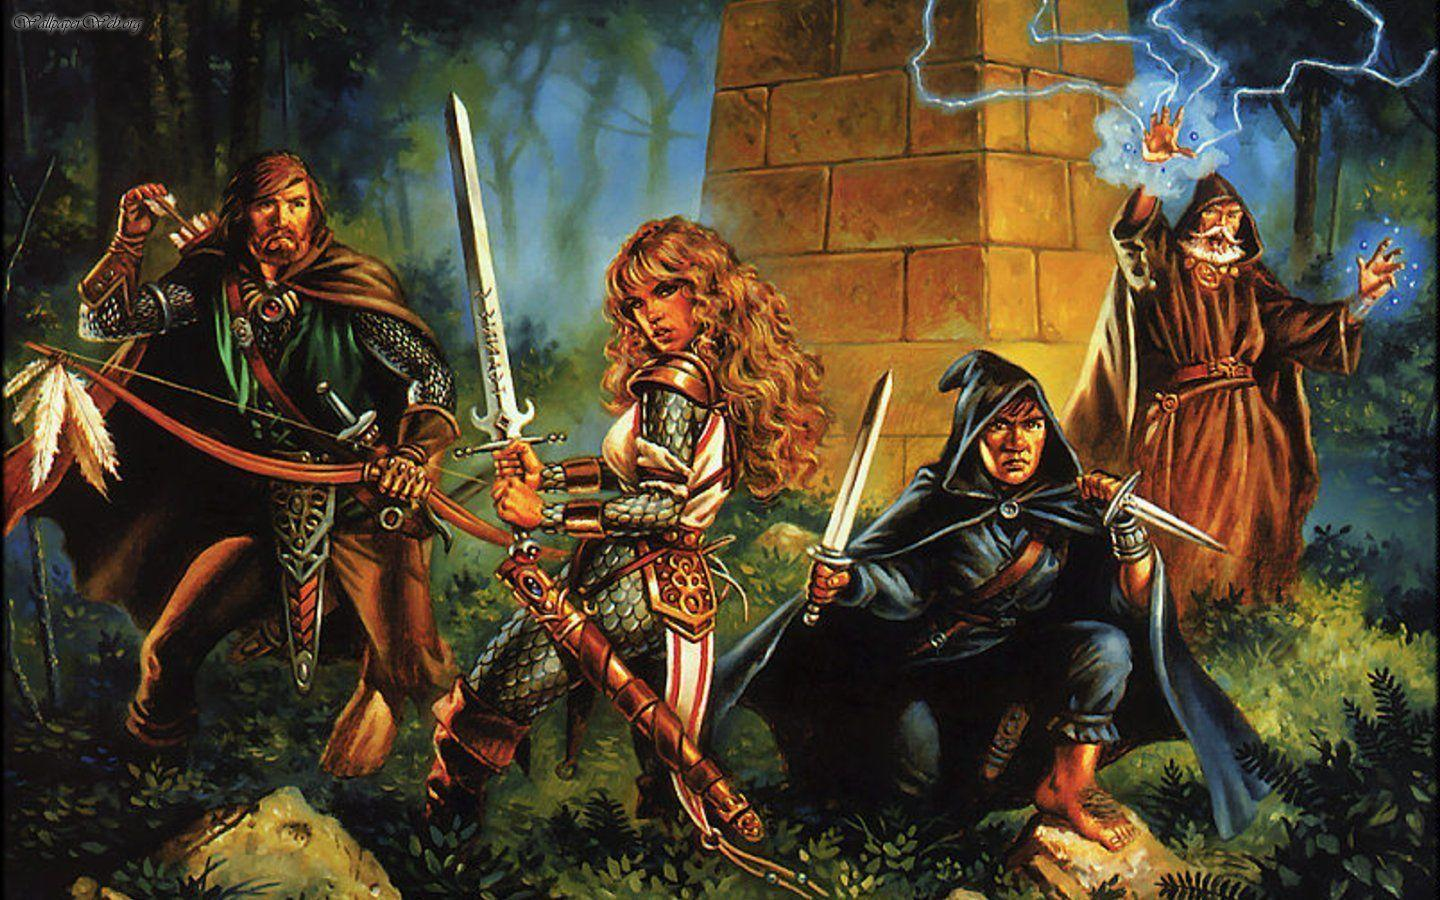 Dragonlance Wallpapers 1440x900